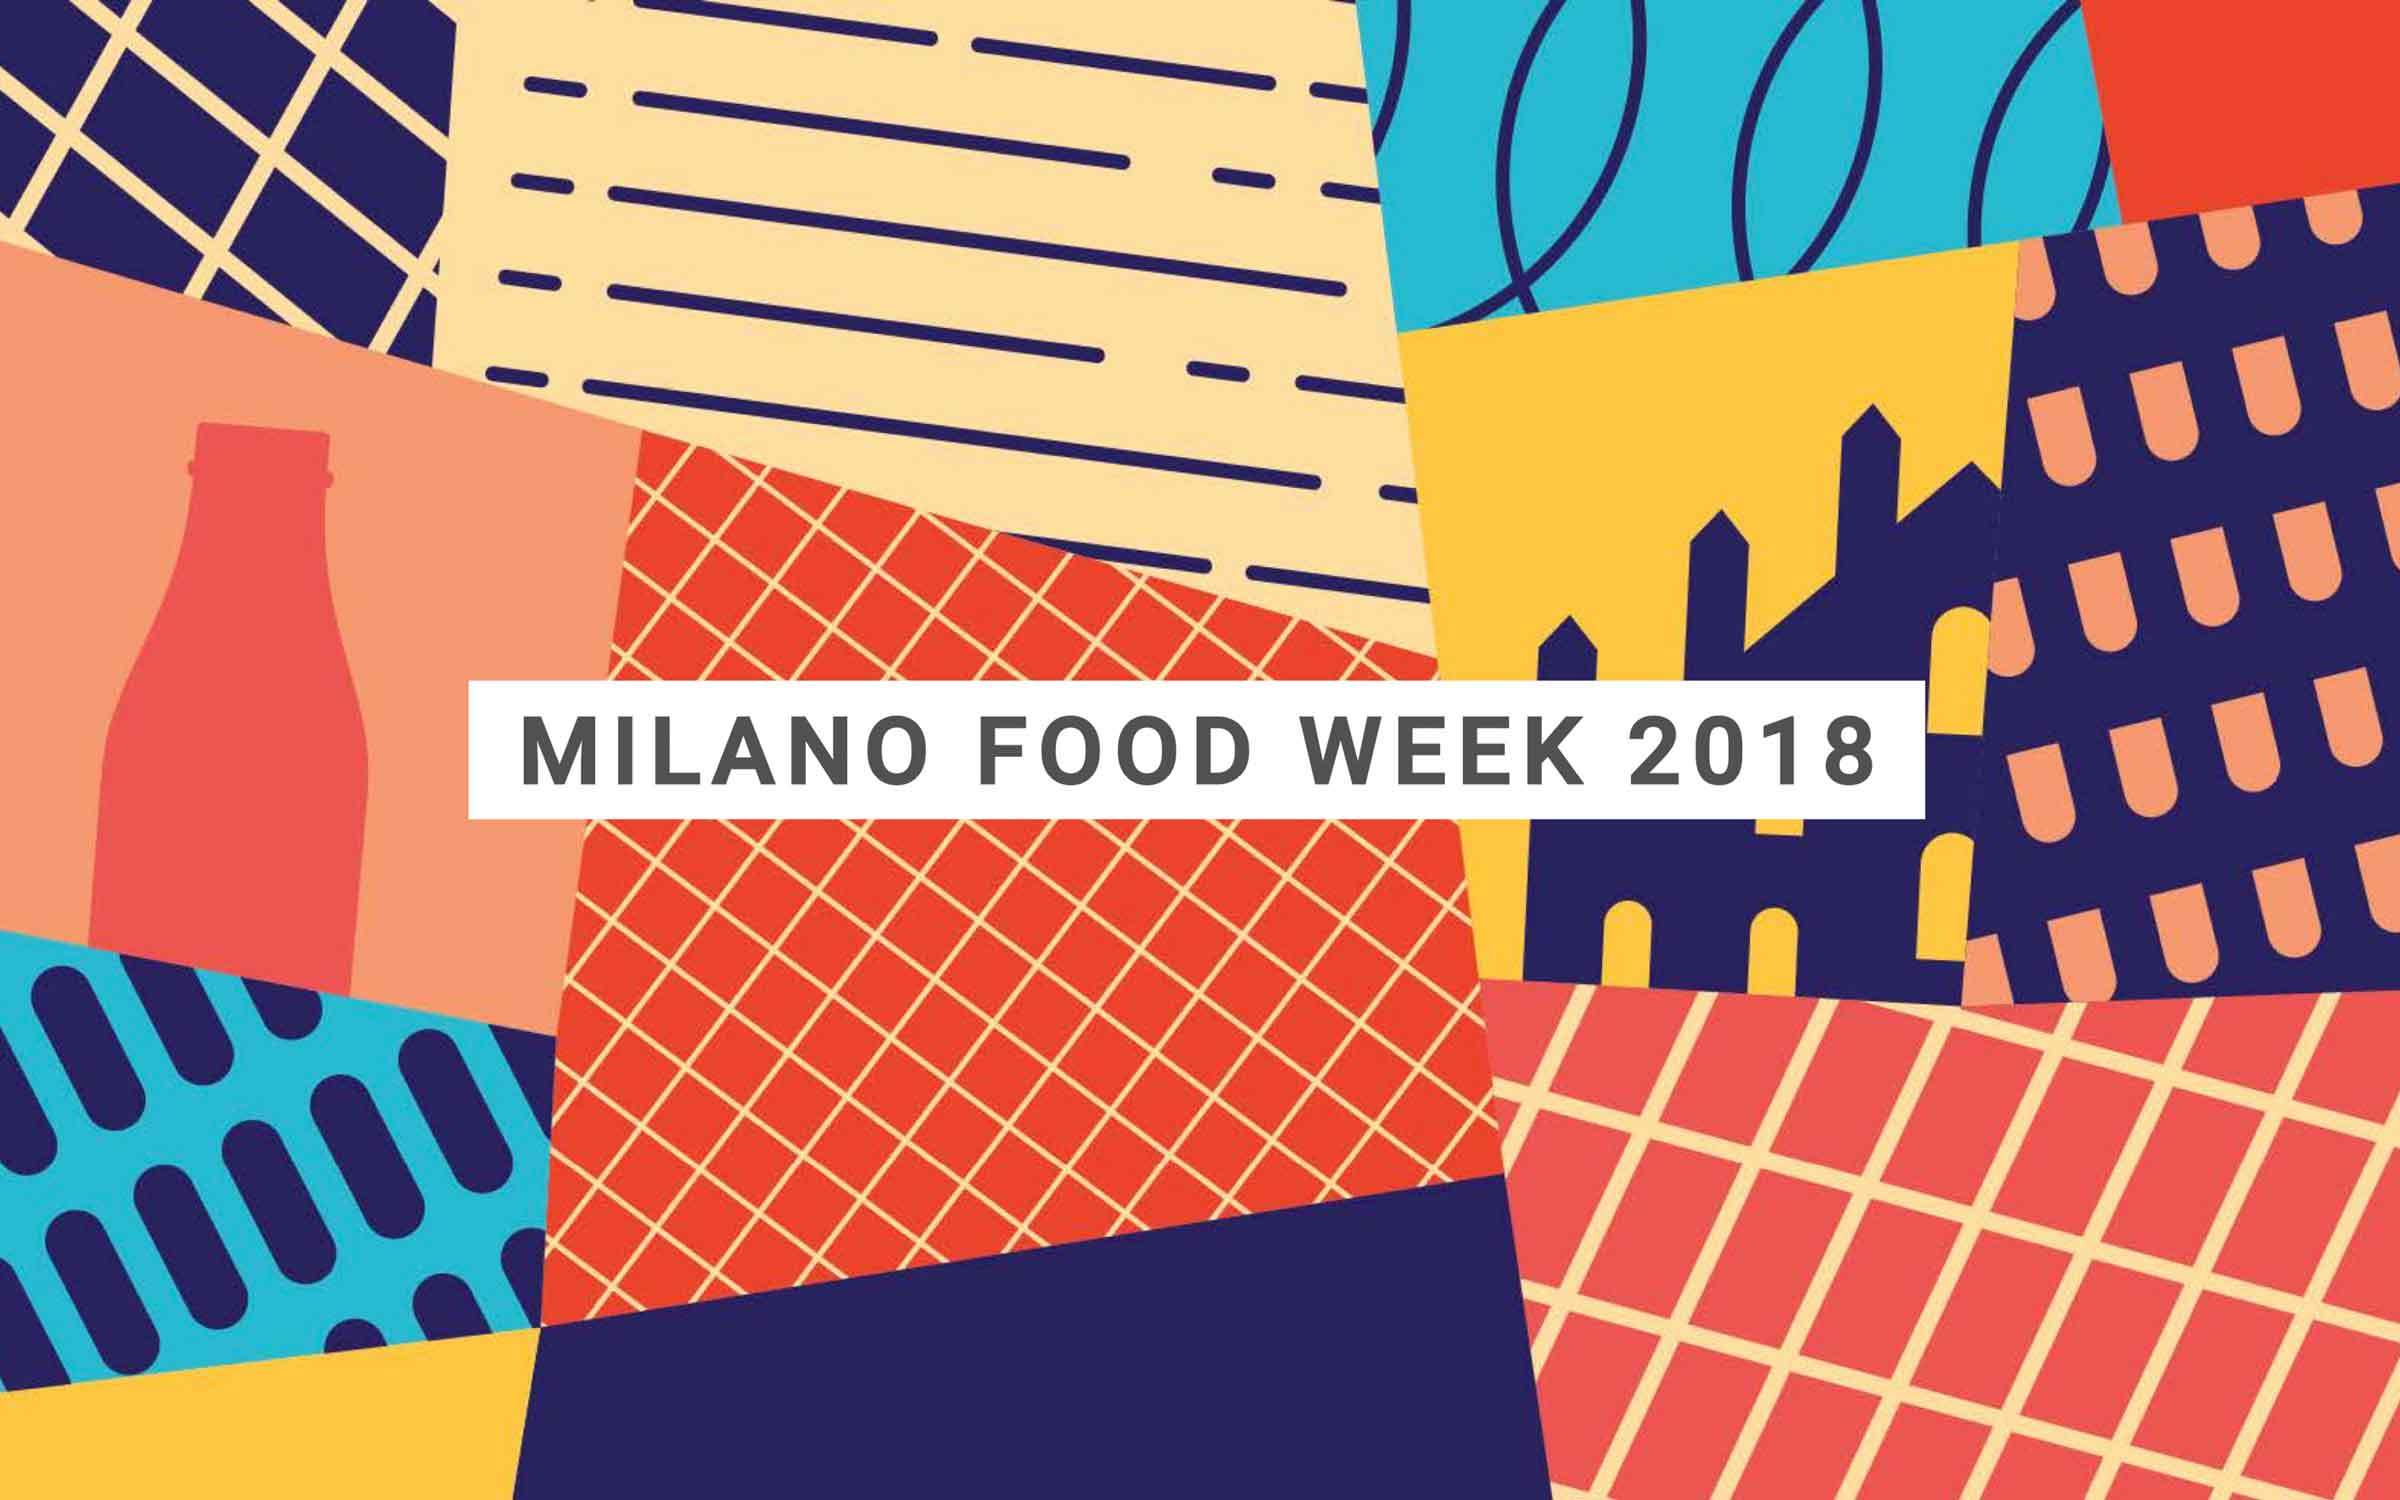 Teaser video of 2018 Milan Food Week by Hangar Design Group